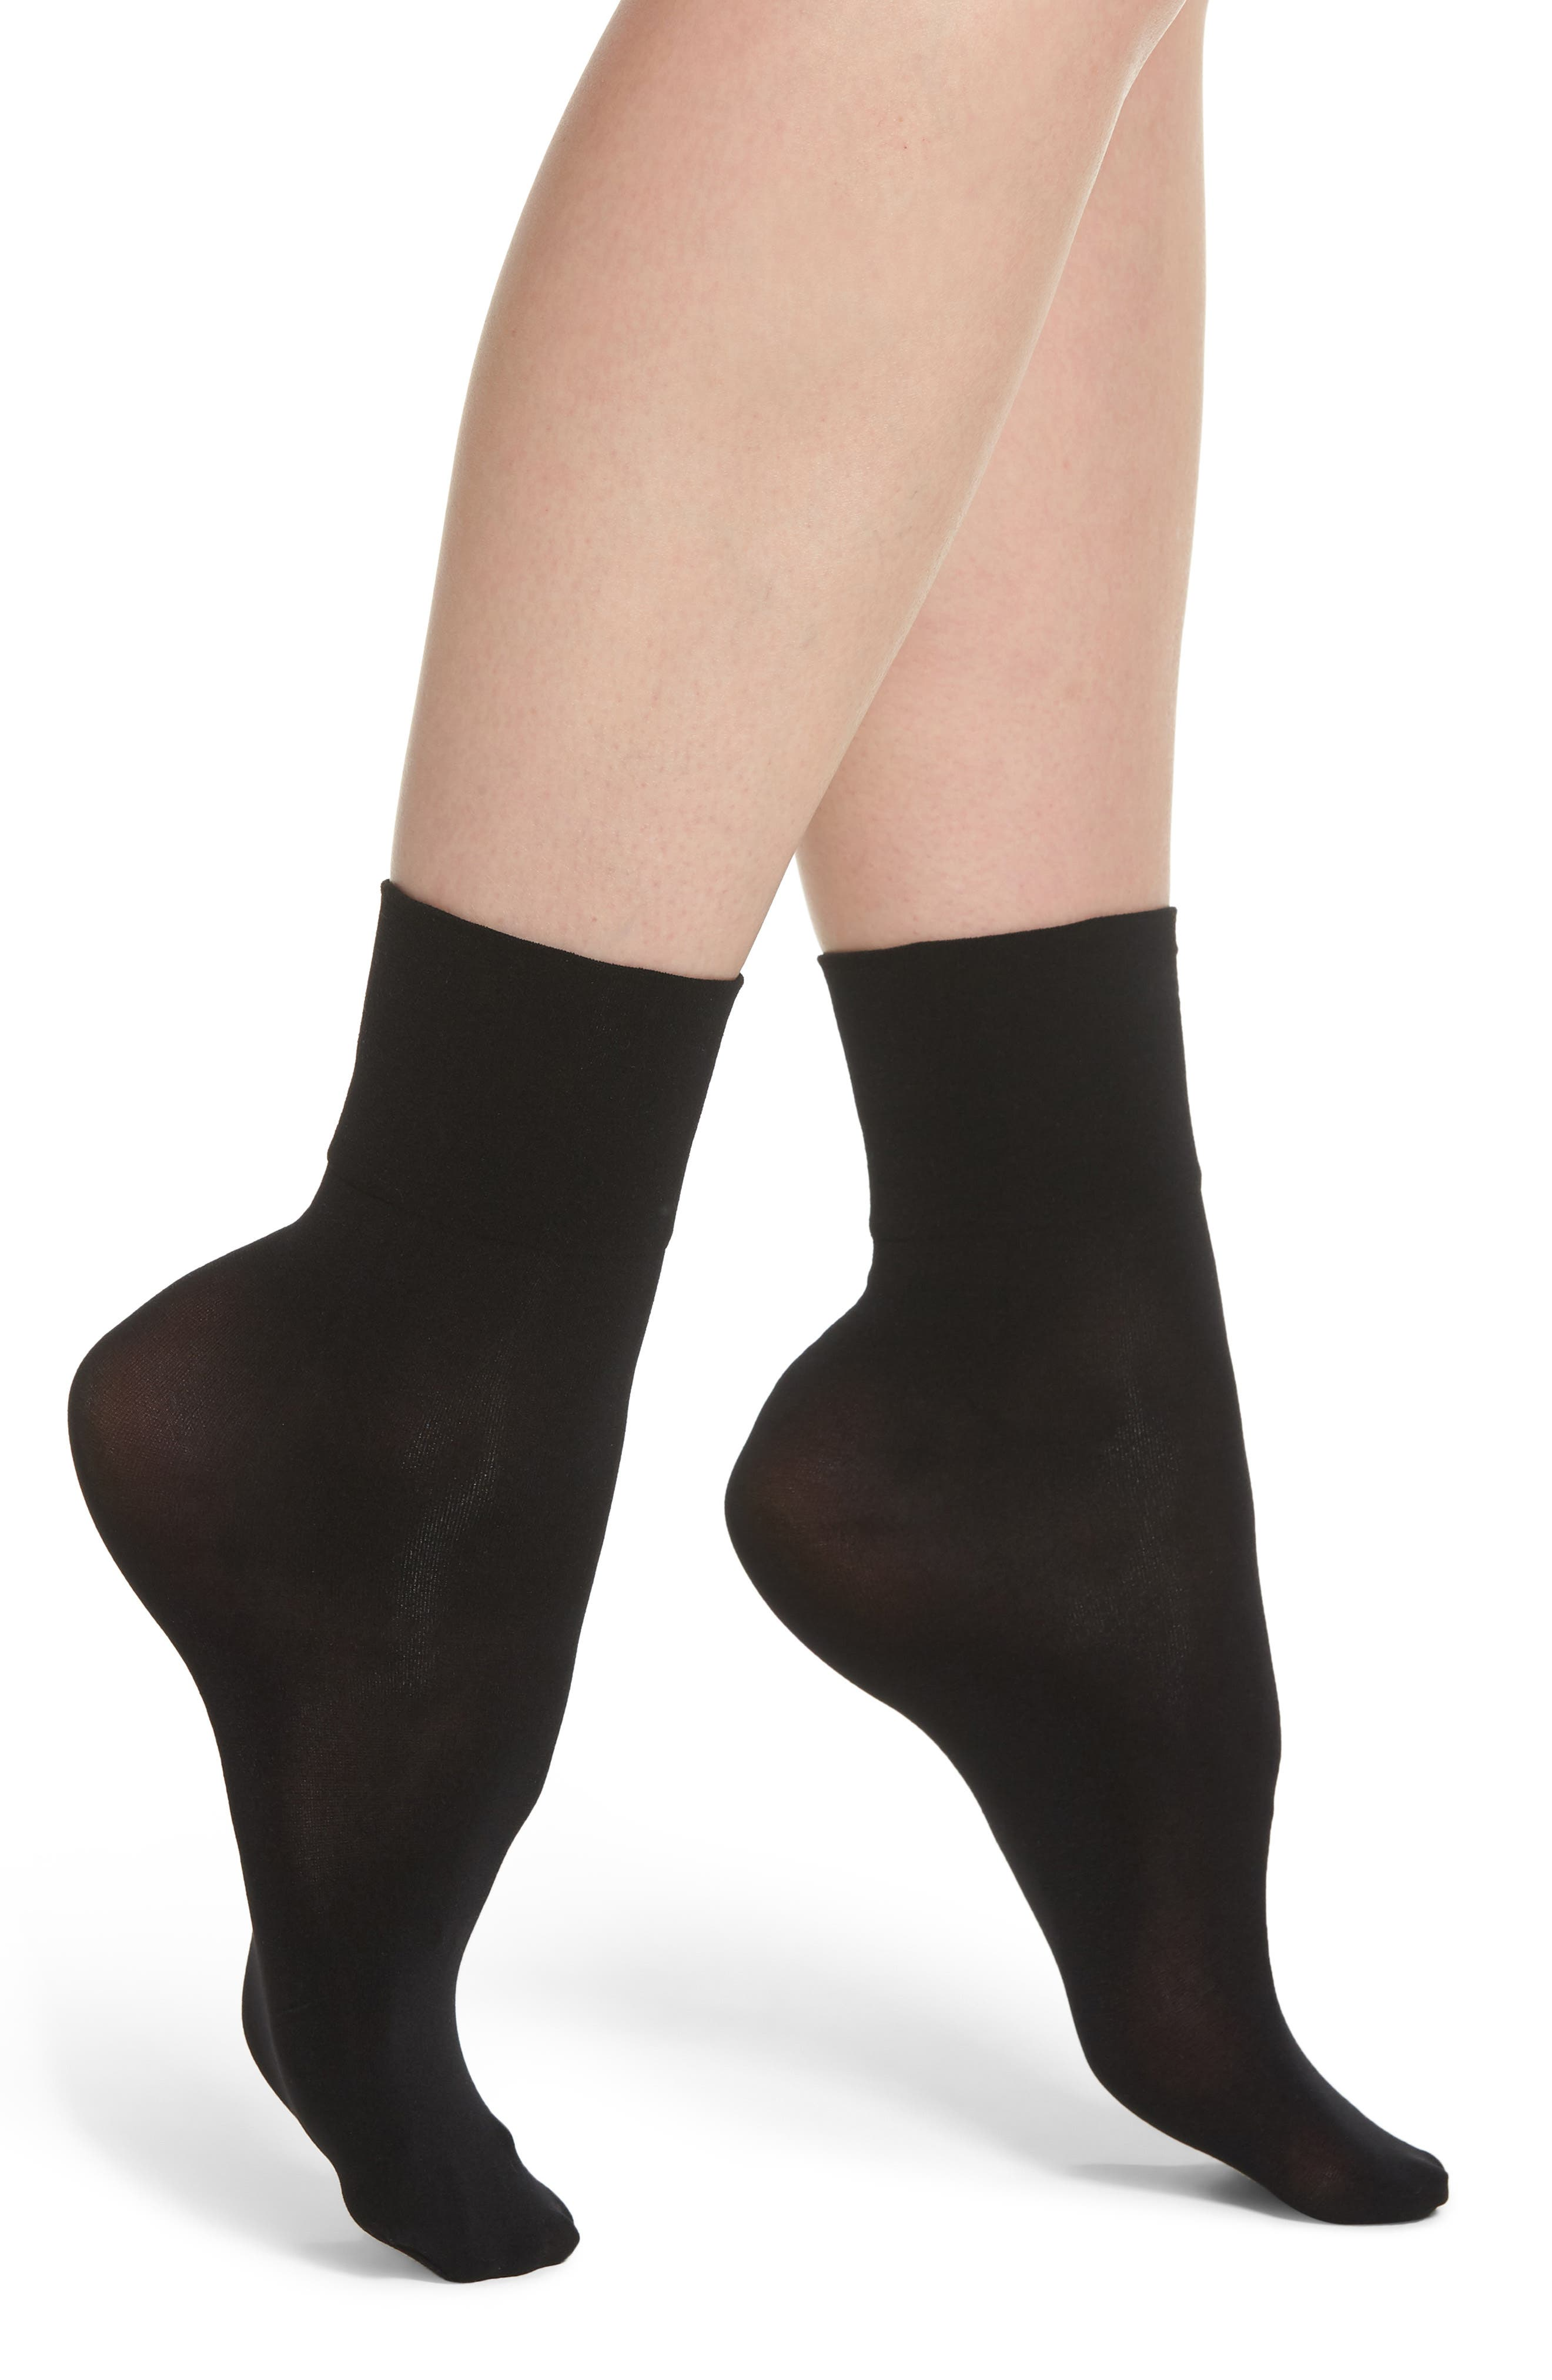 Opaque Anklet Socks,                             Main thumbnail 1, color,                             Black